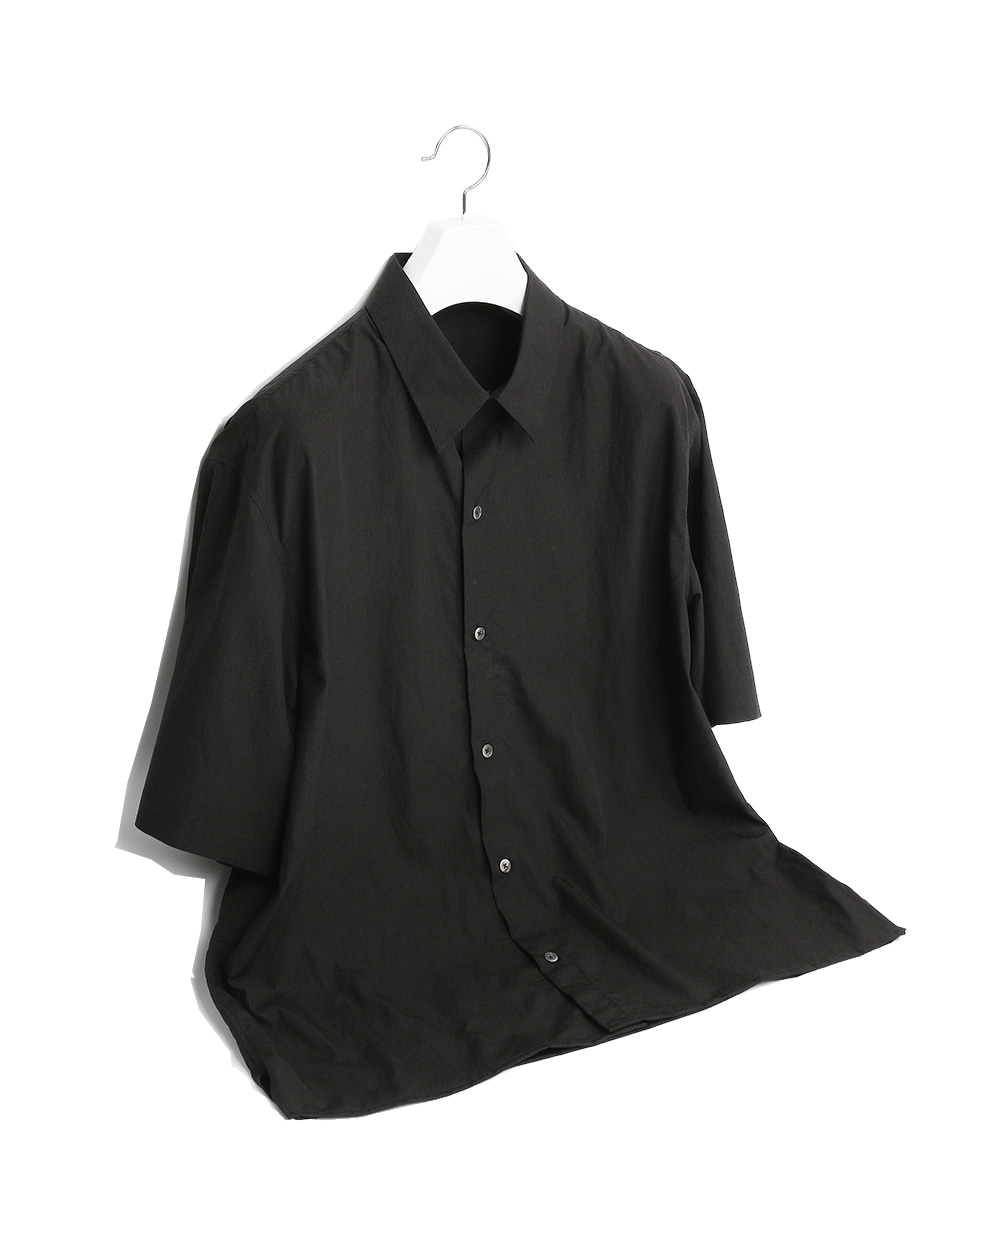 ATE STUDIOS MULTI OPEN HALF SHIRTS VER.YOKE (Black)